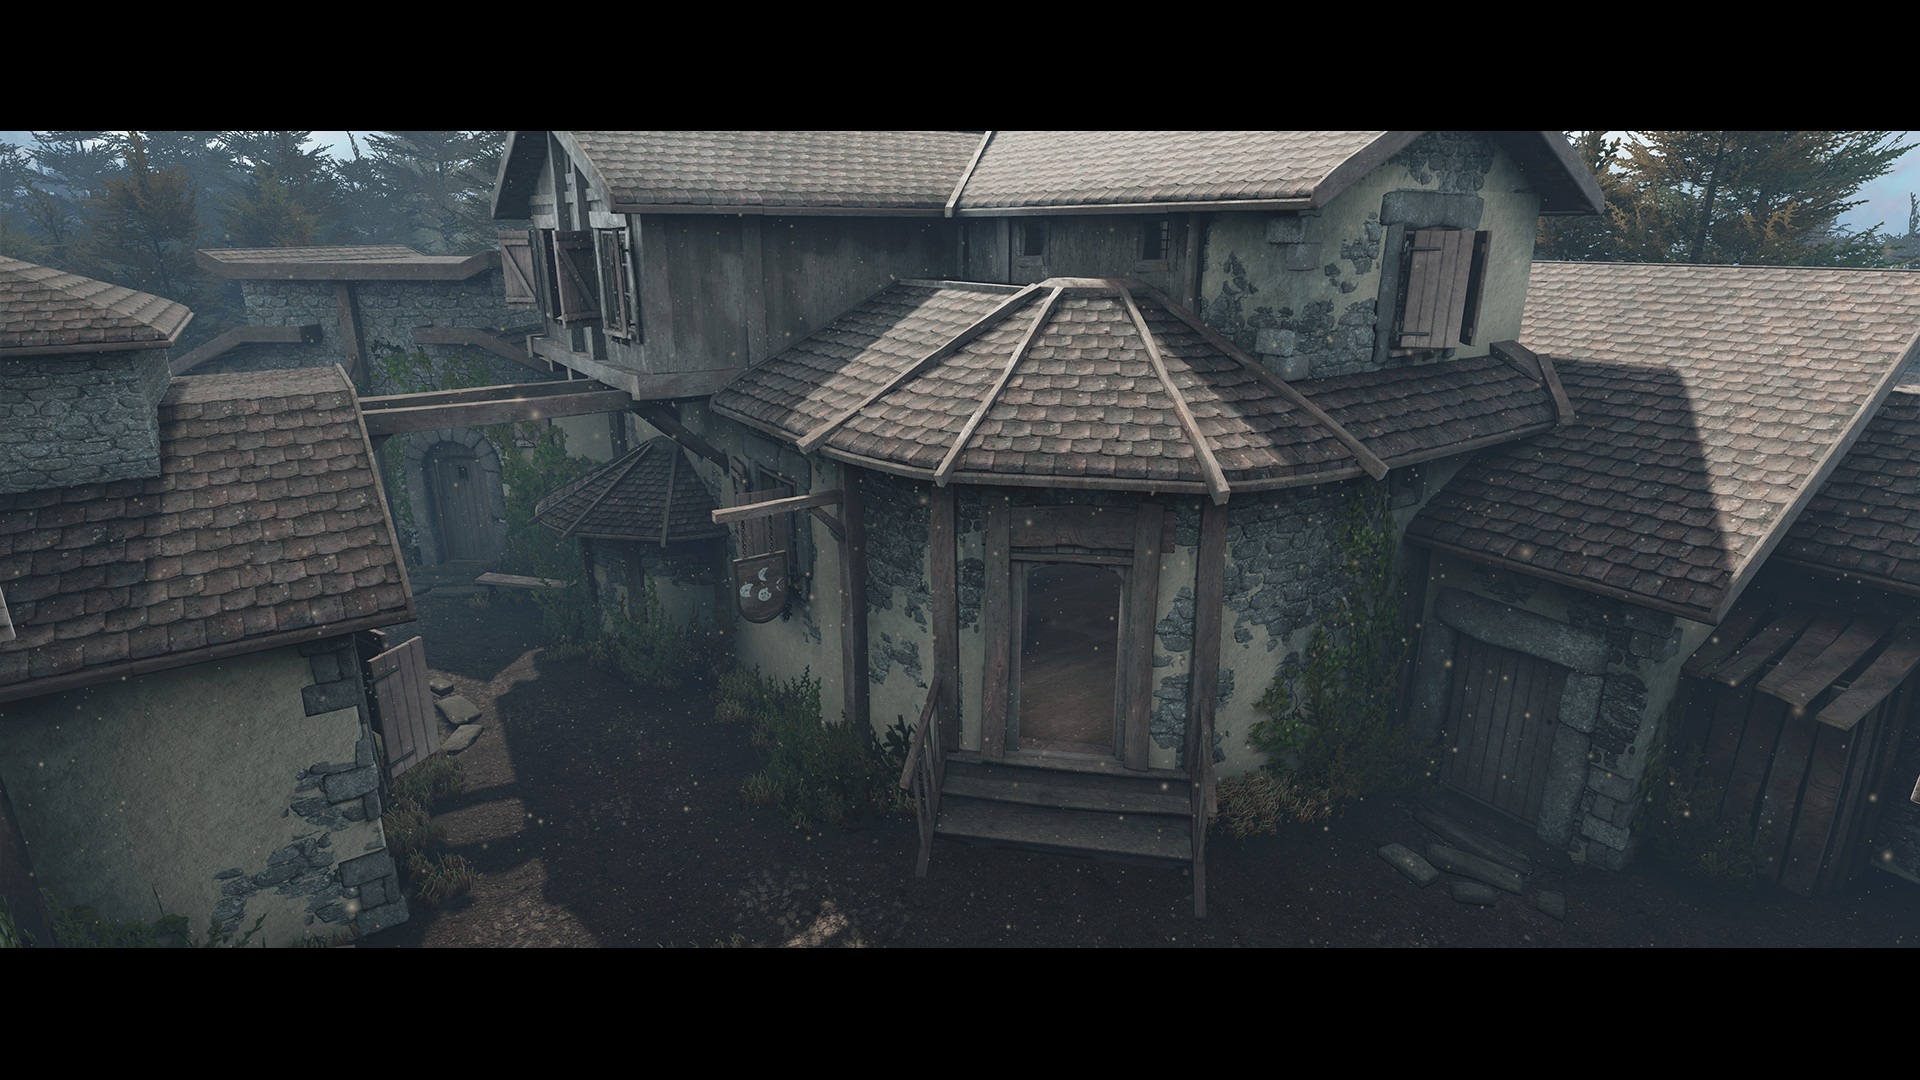 Marco maria rossi store oldvillage screenshot 4